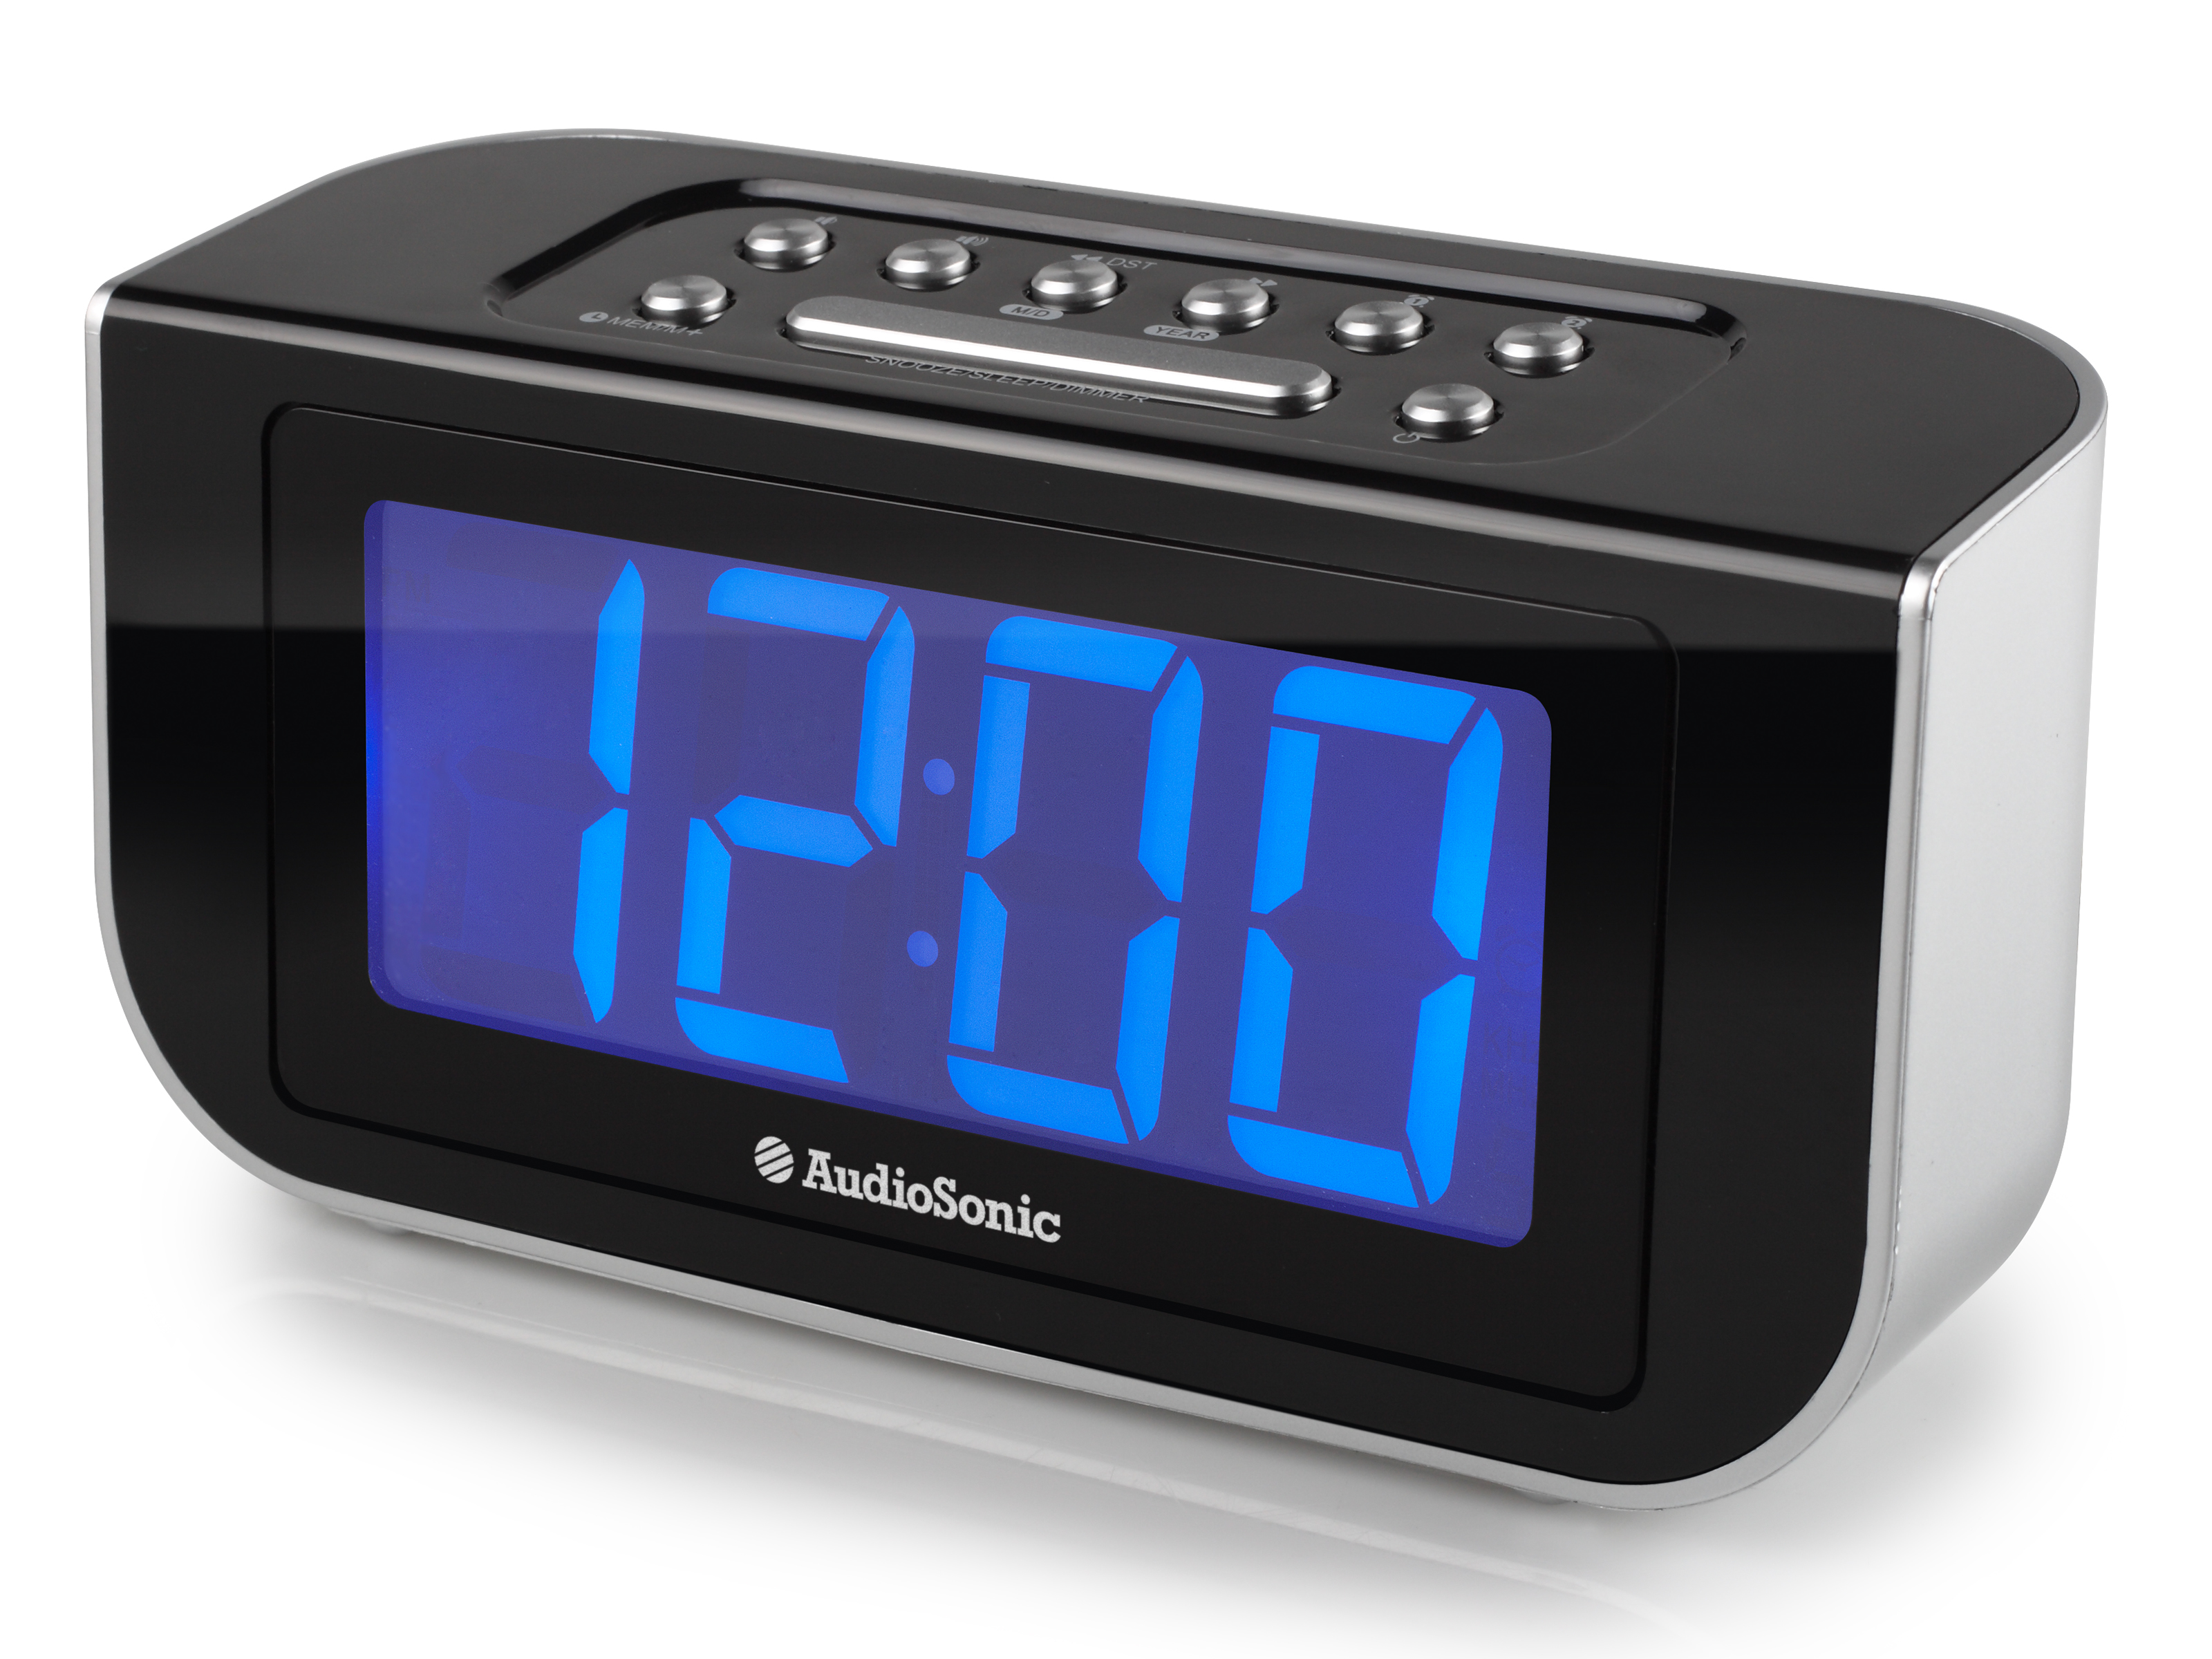 AudioSonic CL-1475 Orologio Digitale Nero, Argento radio